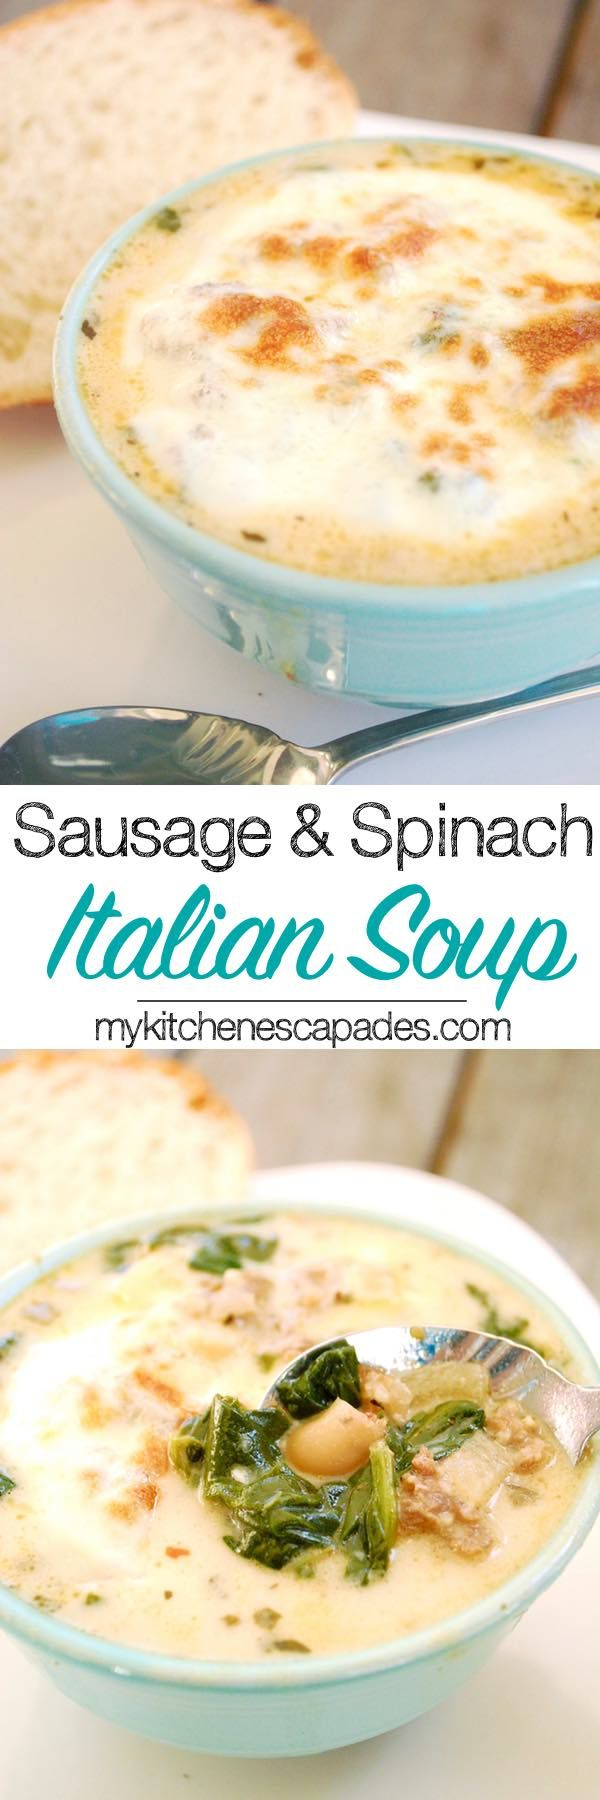 This yummy Sausage and Spinach Italian Soup to fill you up! Loaded with Italian sausage, cannellini beans, spinach and potatoes.